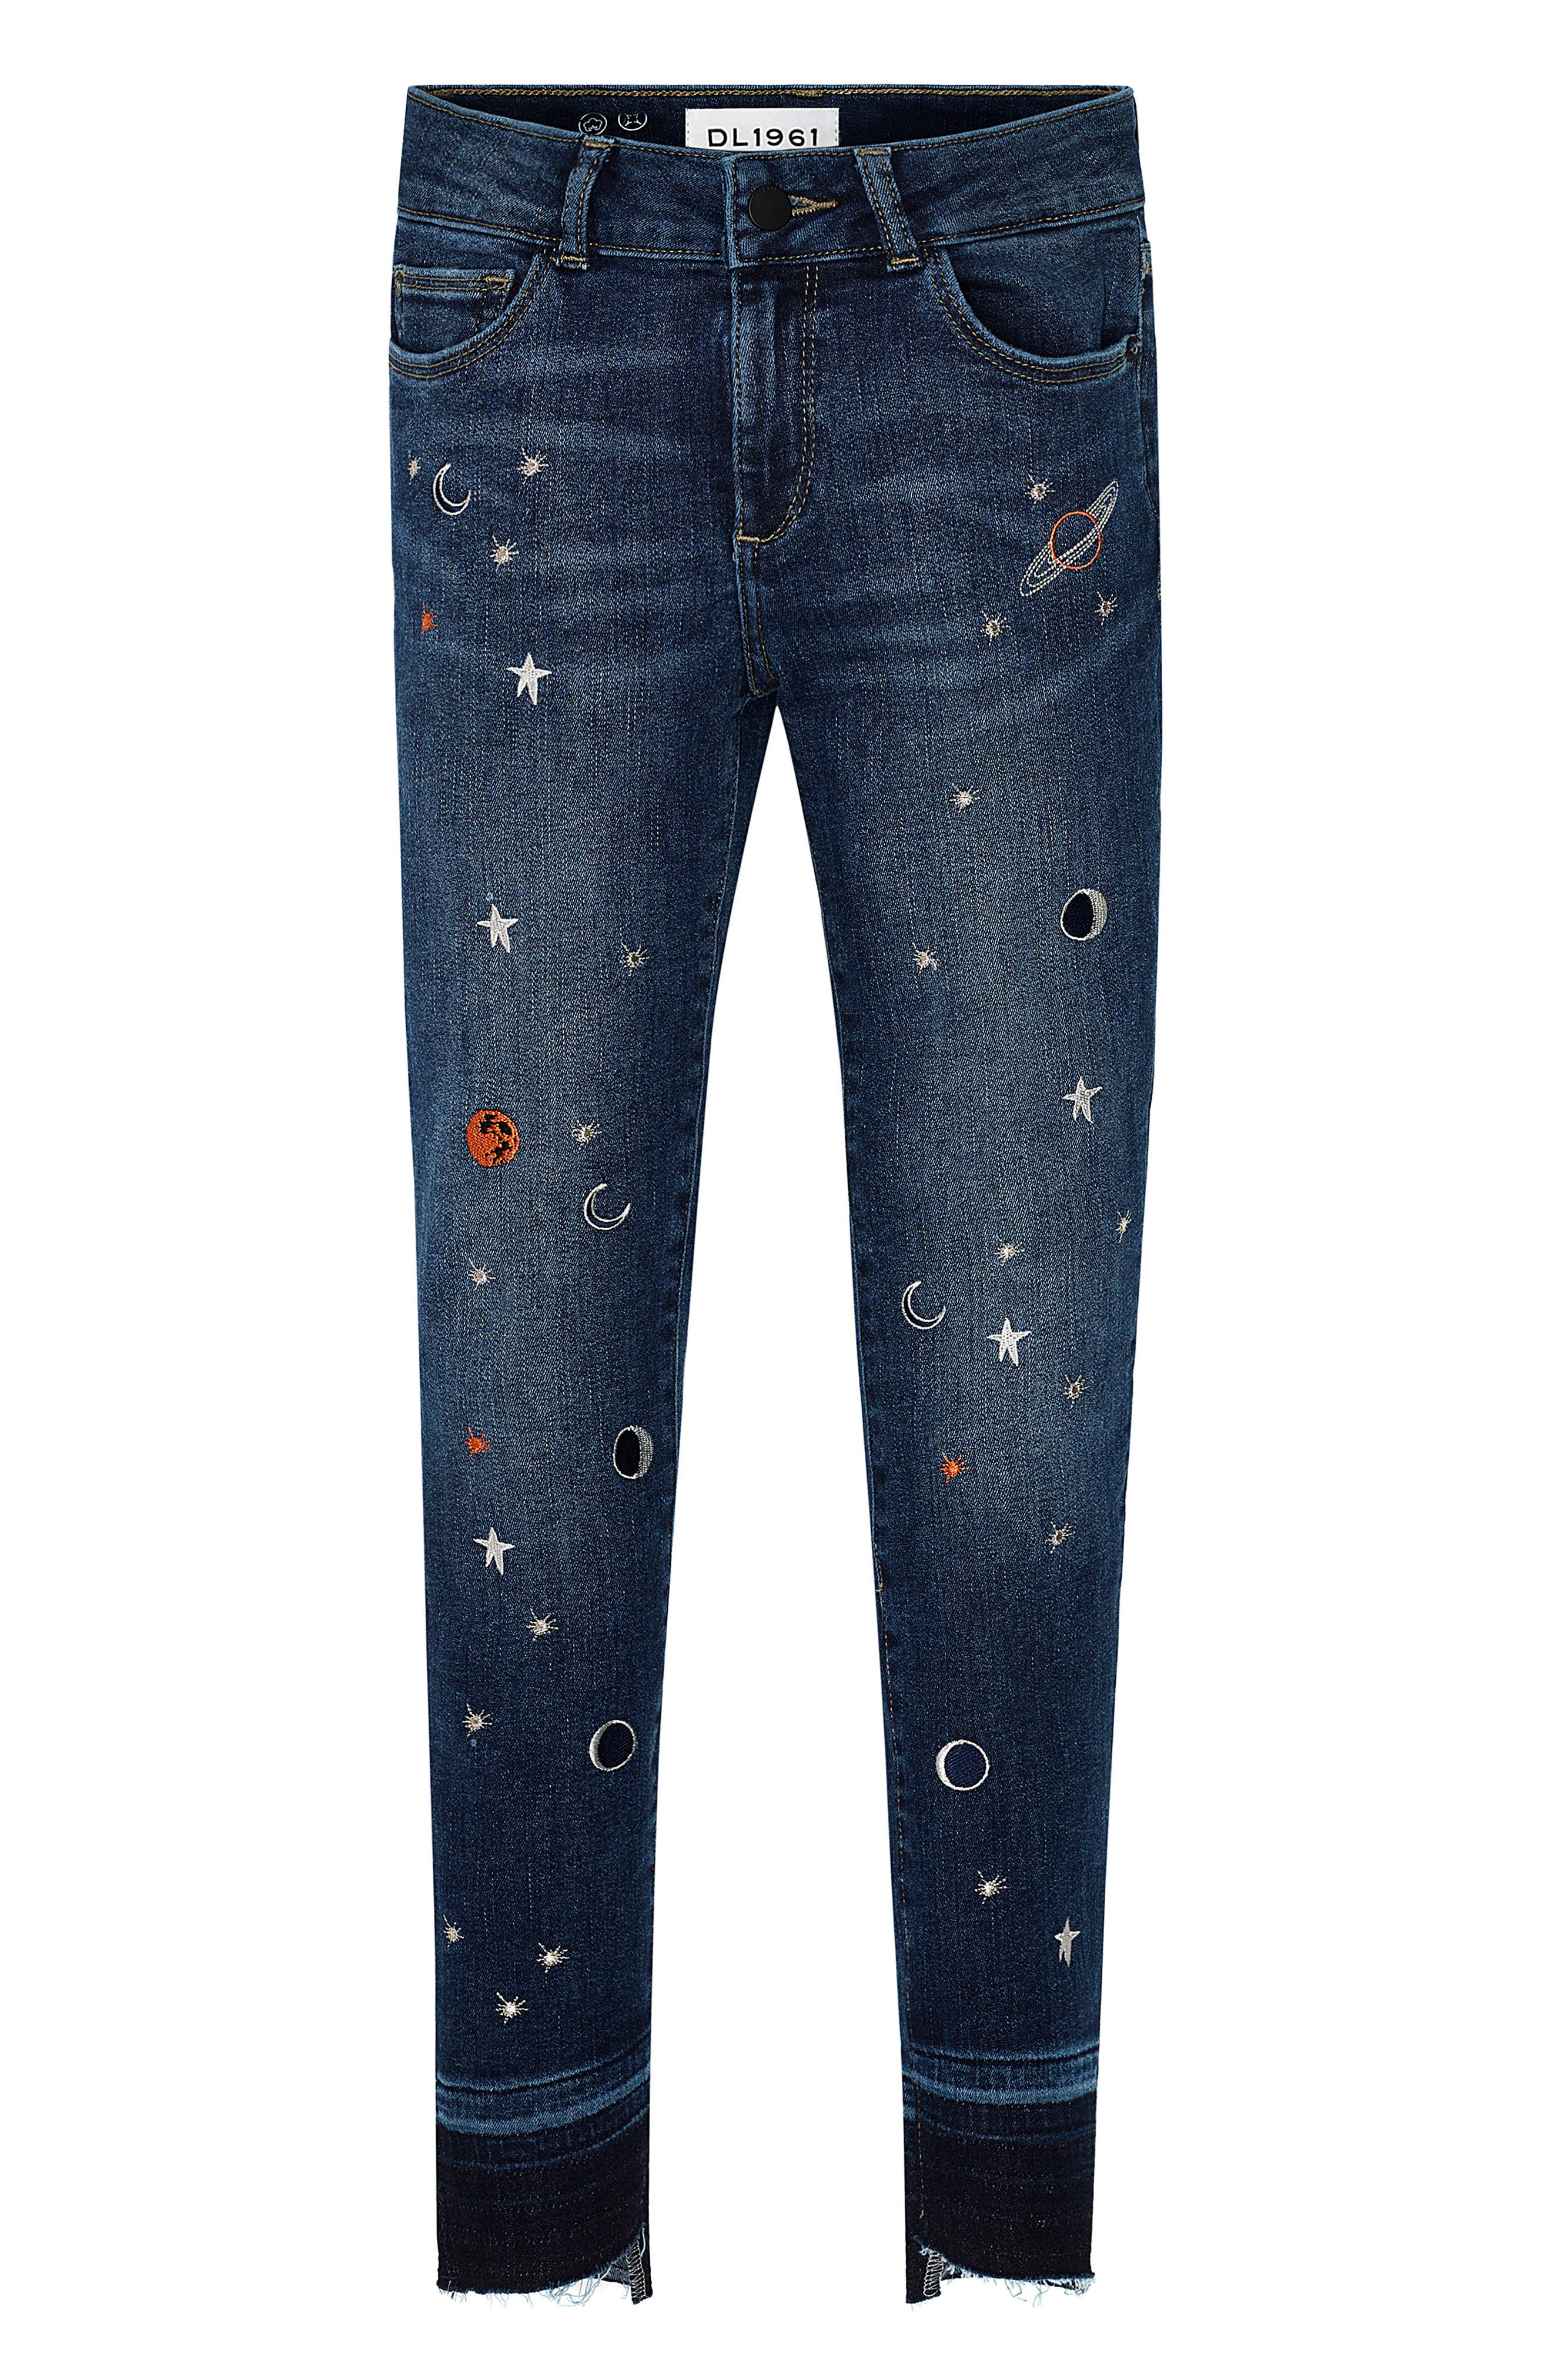 Chloe Galaxy Embroidered Skinny Jeans,                         Main,                         color, Galaxy